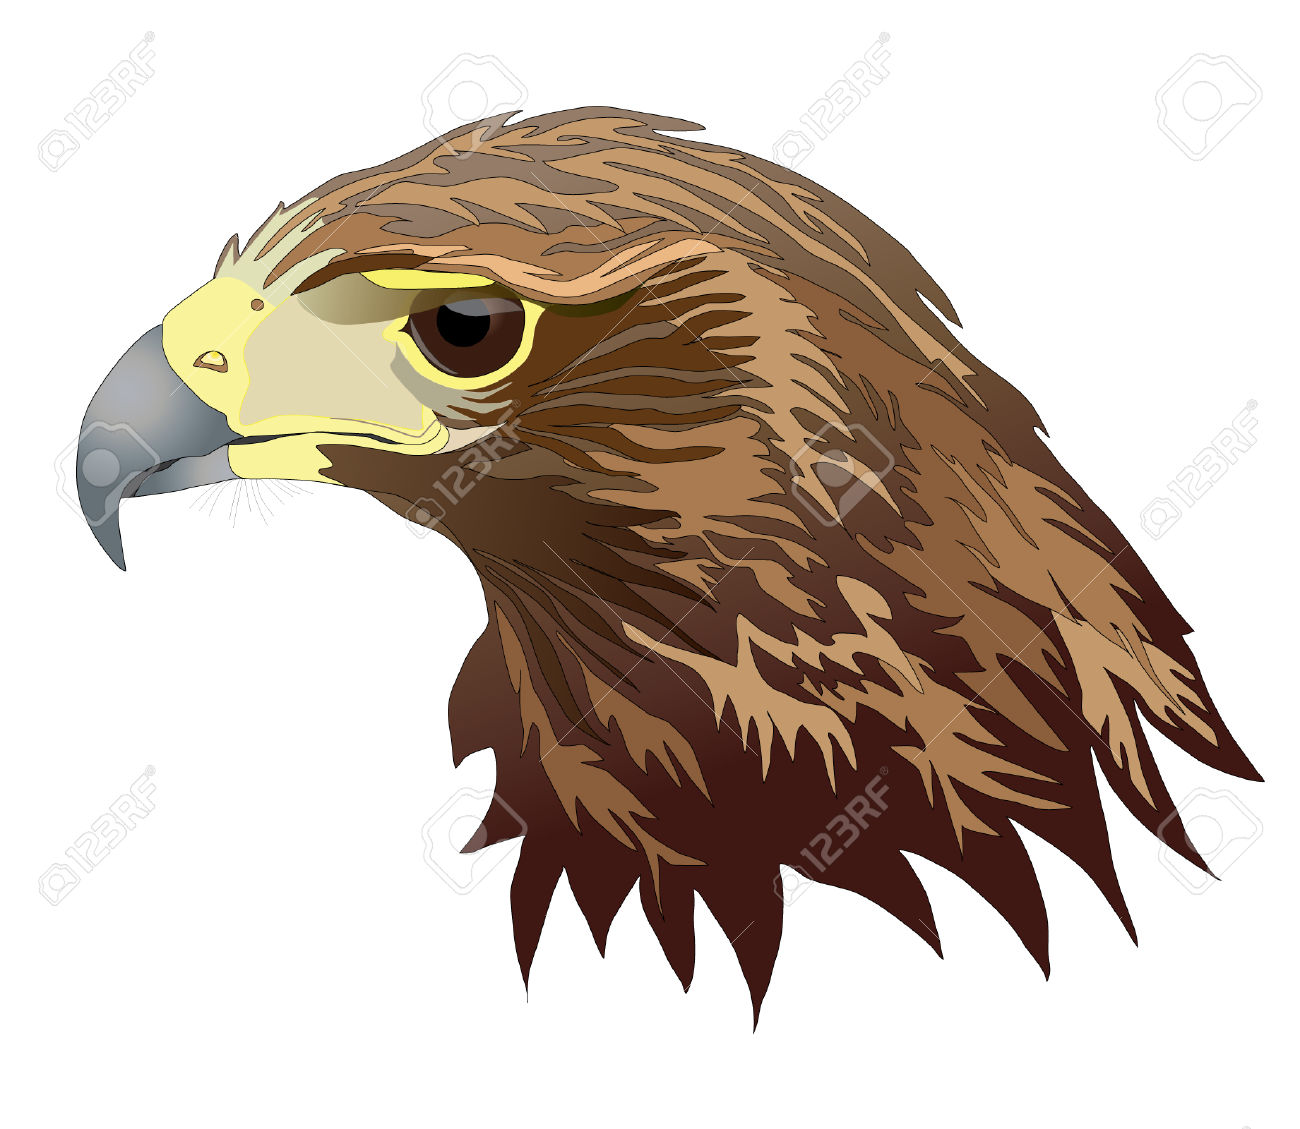 Harris ' hawk clipart - Clipground